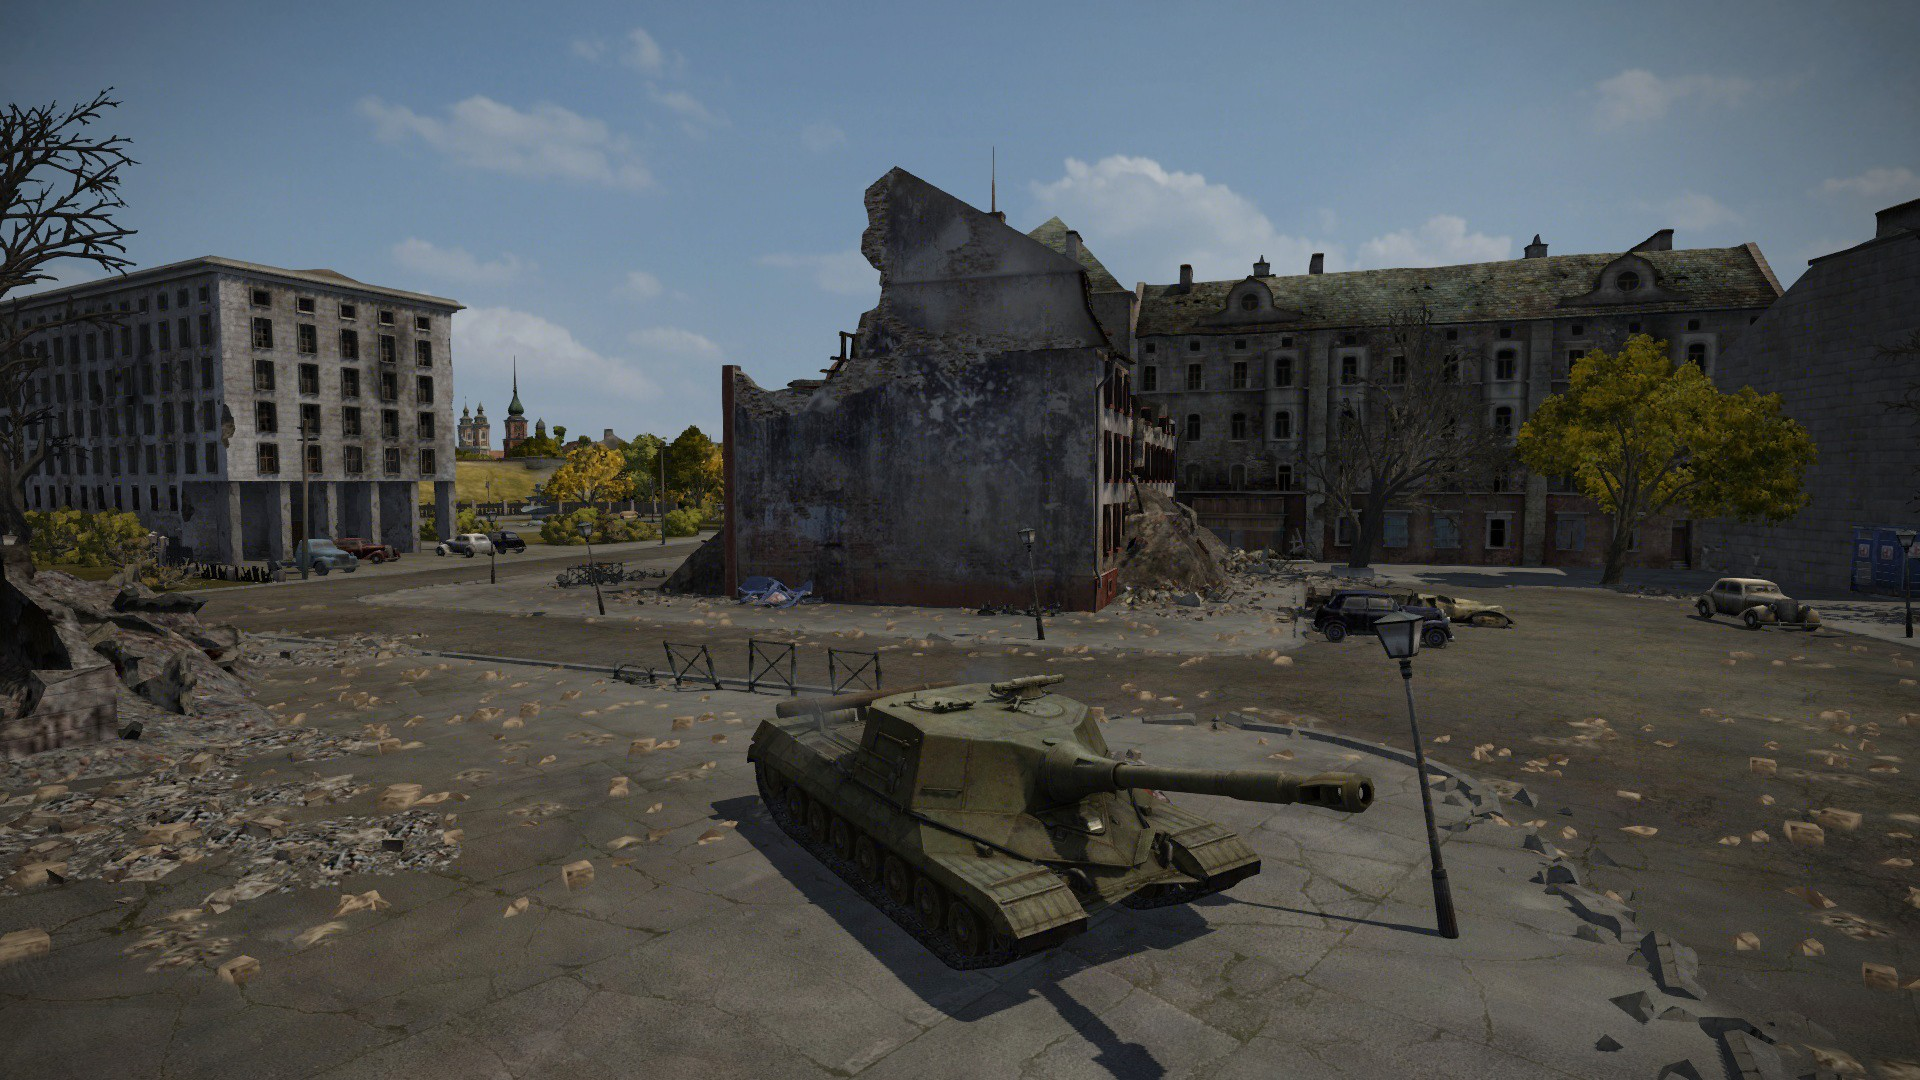 http://worldoftanks.com/dcont/fb/imagesforarticles/object268.jpg